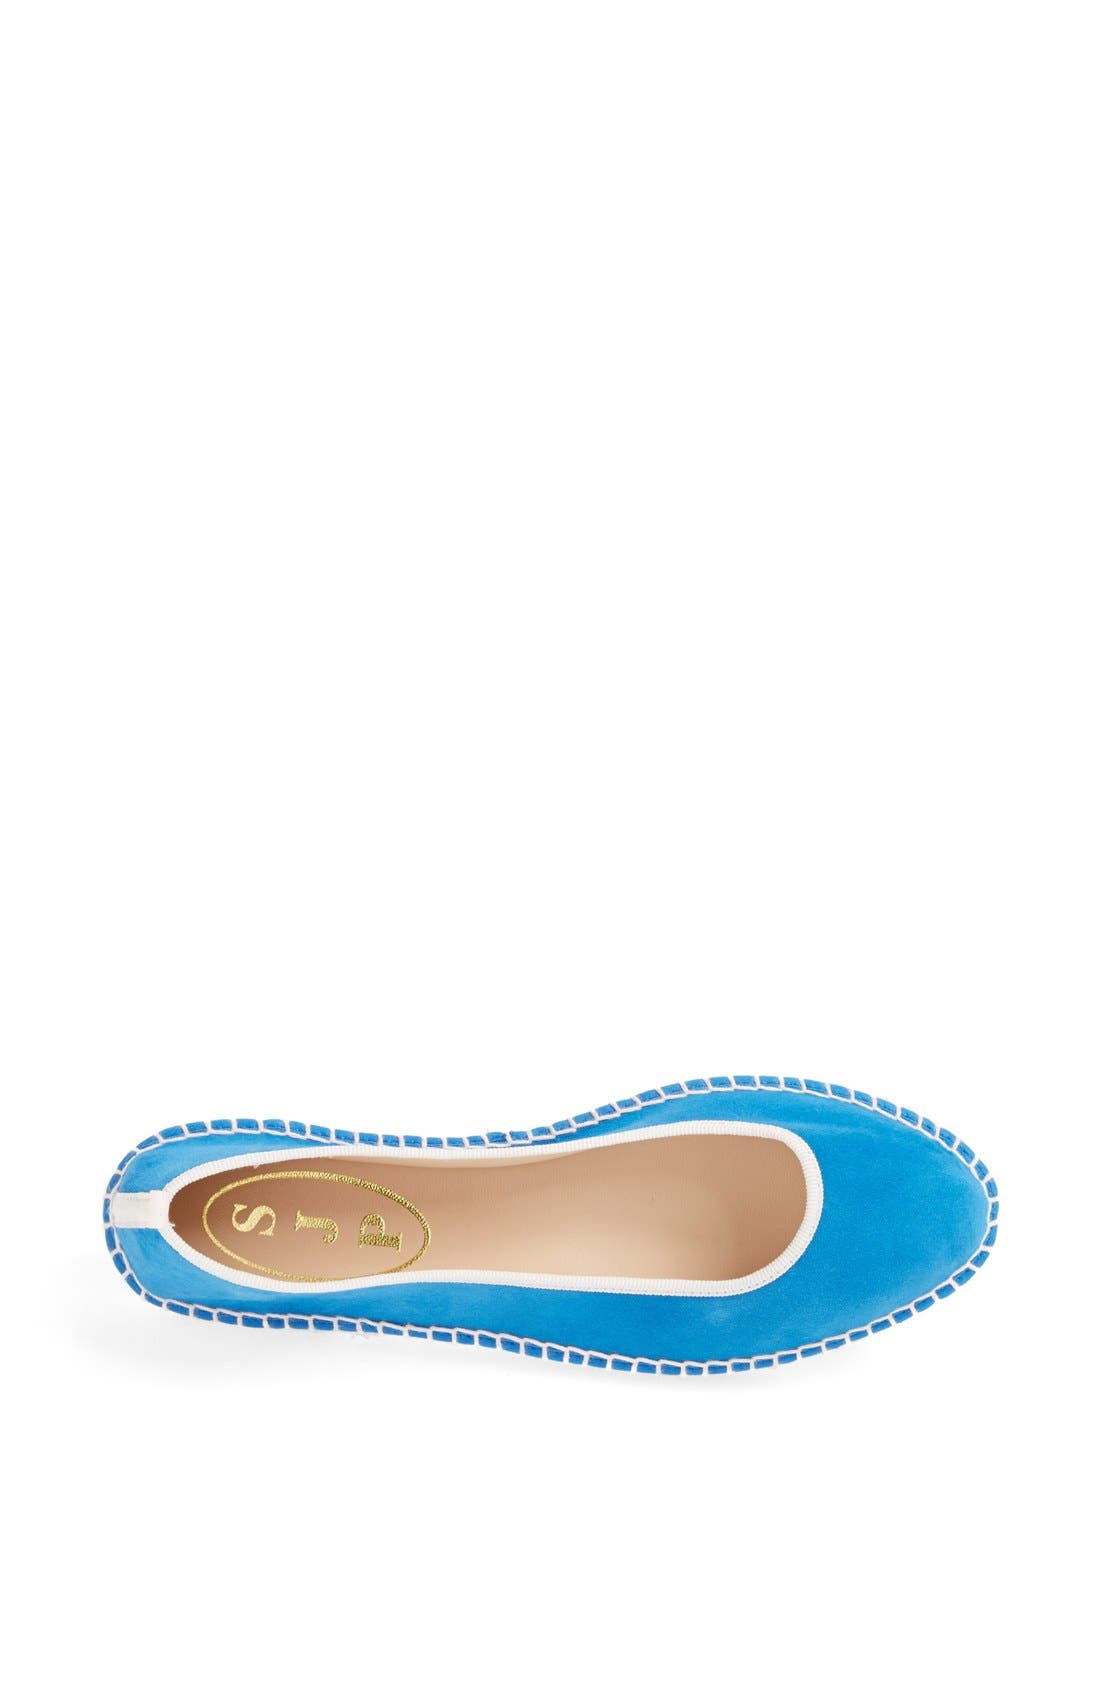 Alternate Image 3  - SJP 'Billie' Suede Flat (Nordstrom Exclusive)